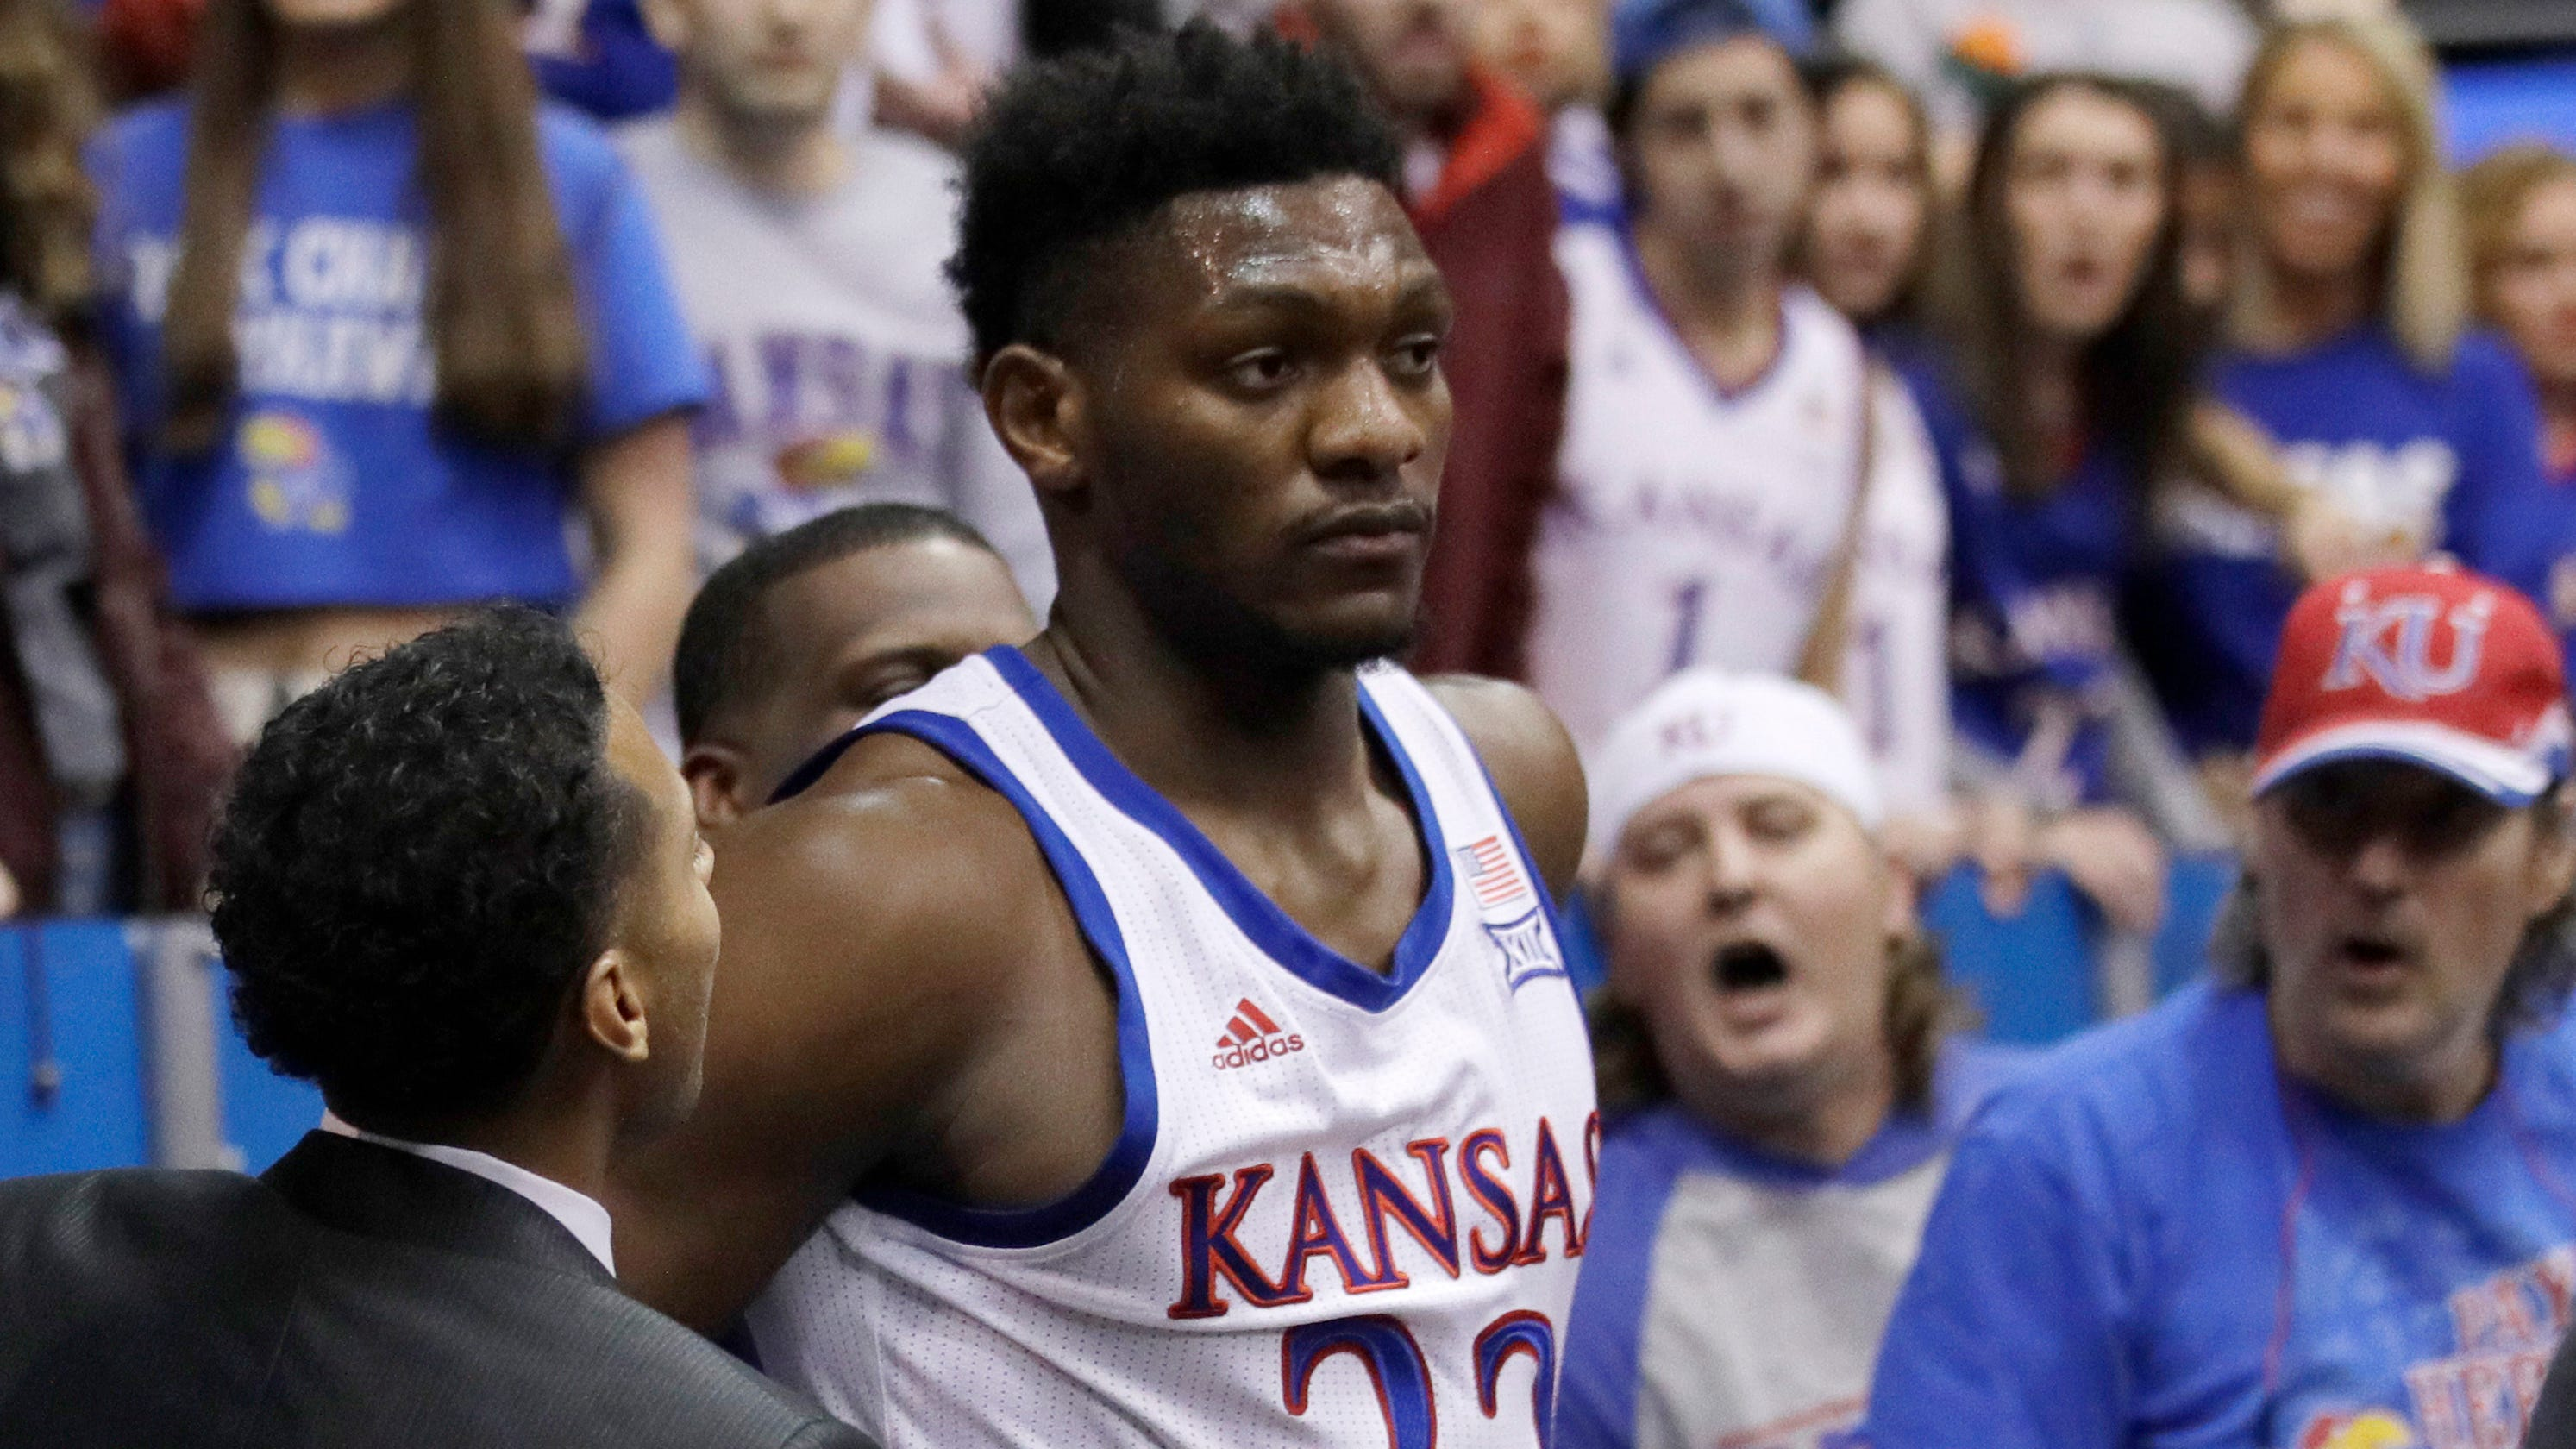 Kansas basketball player Silvio De Sousa steps away from sport to focus on 'personal issues'